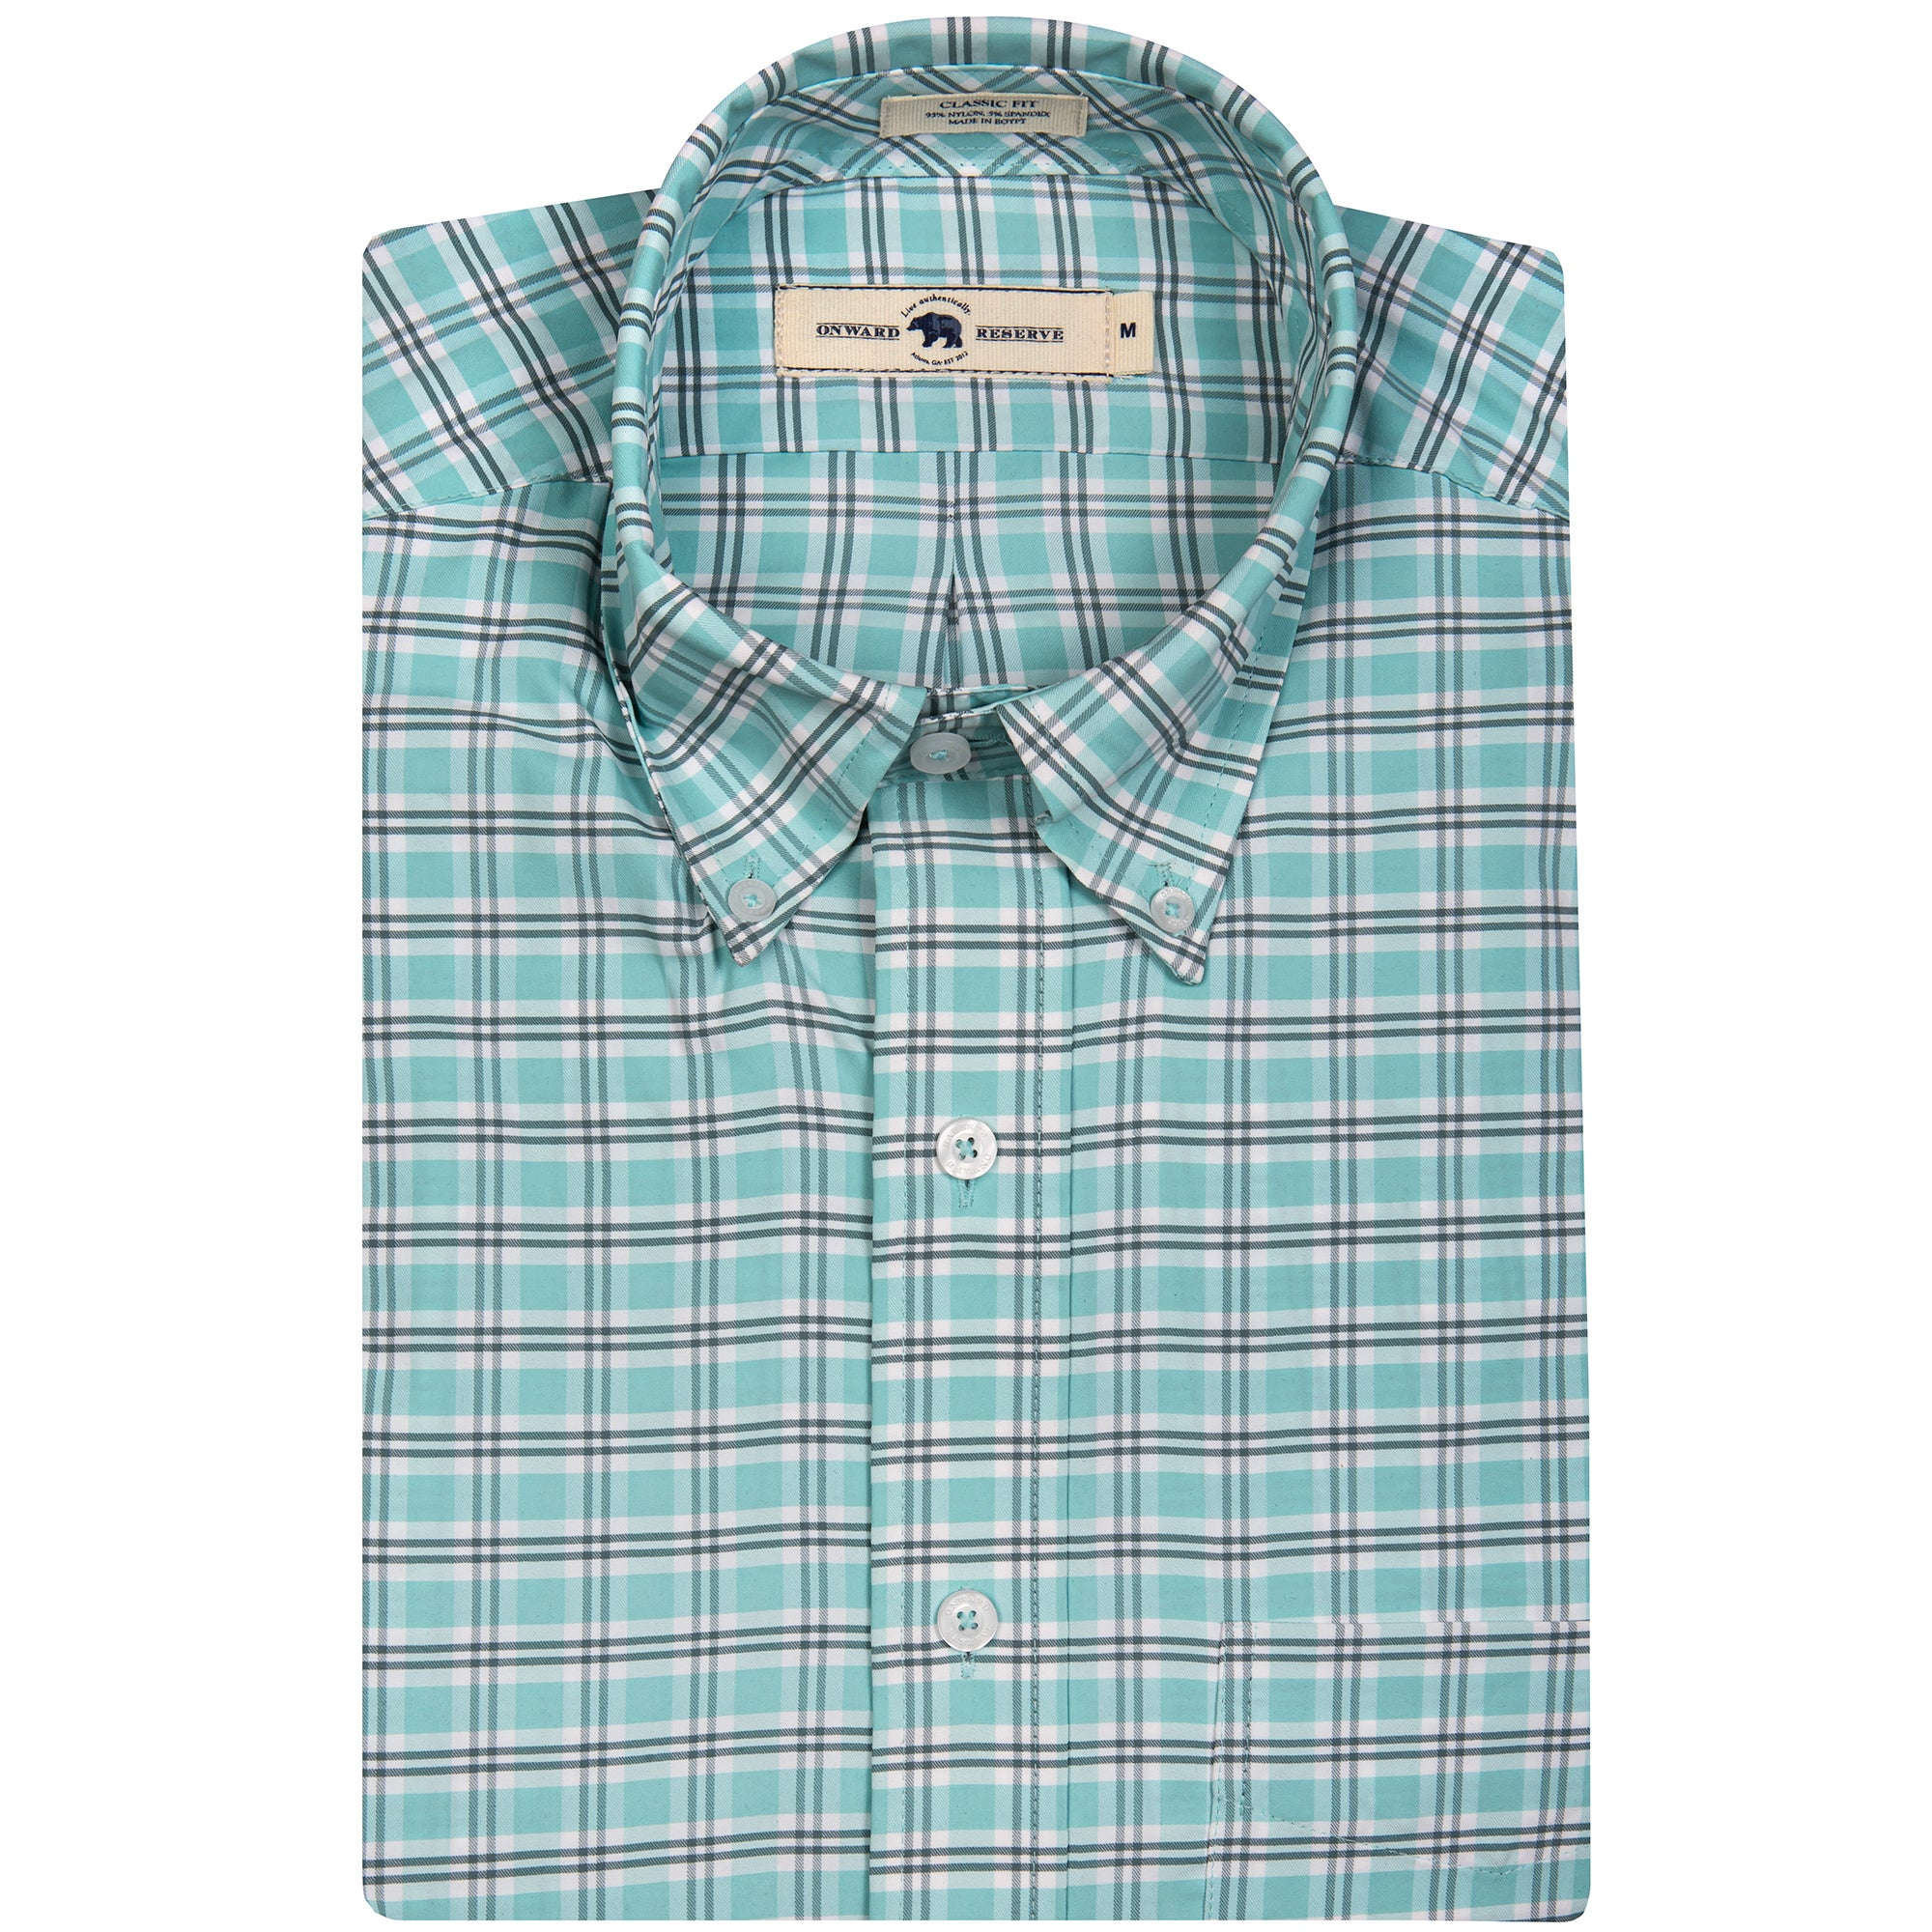 Bertie Classic Fit Performance Button Down